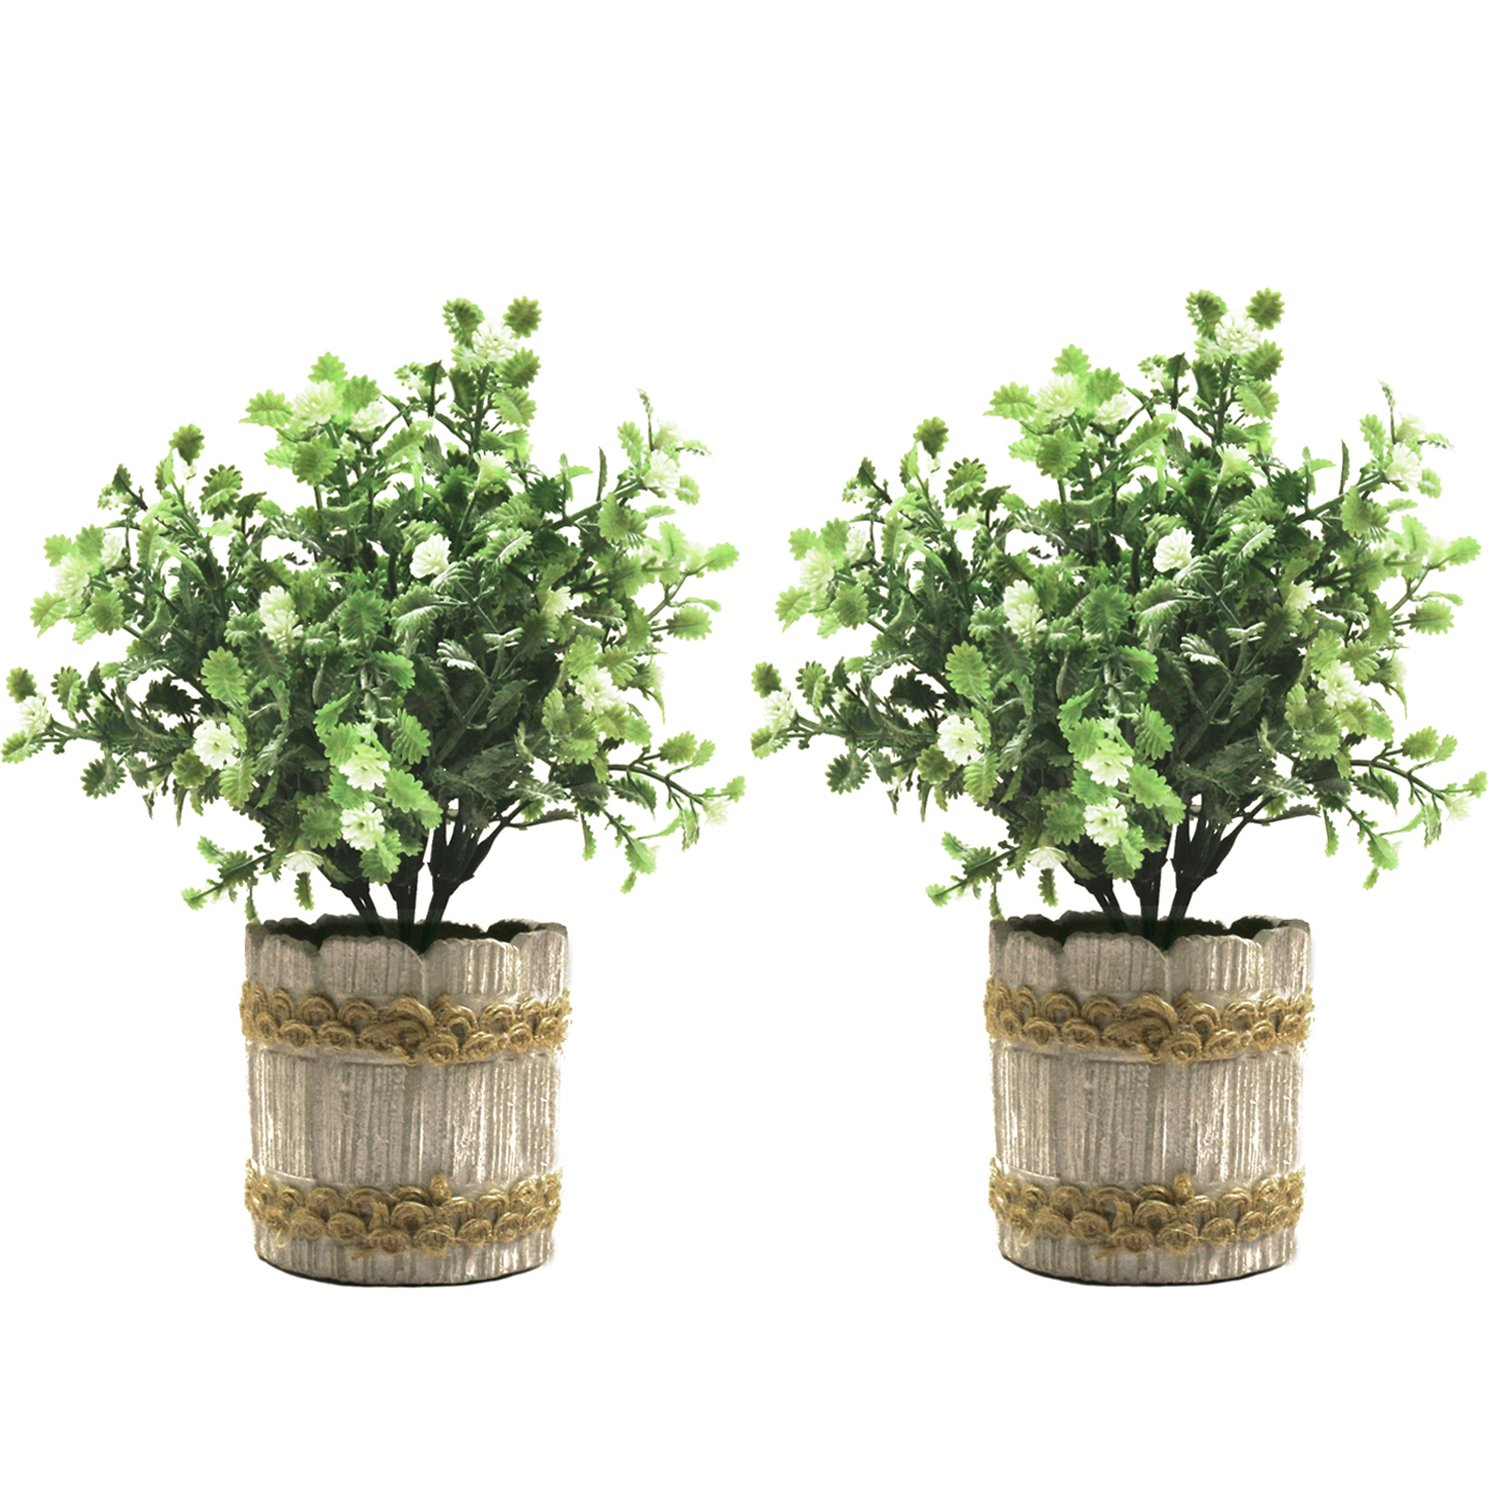 SHACOS 2 Pack of Artificial Potted Plants,Plastic Bonsai Plants with Retro Cement Planter Fake Greenery for House Office Garden Outdoor Décor (White Gypsophila, 2) by SHACOS